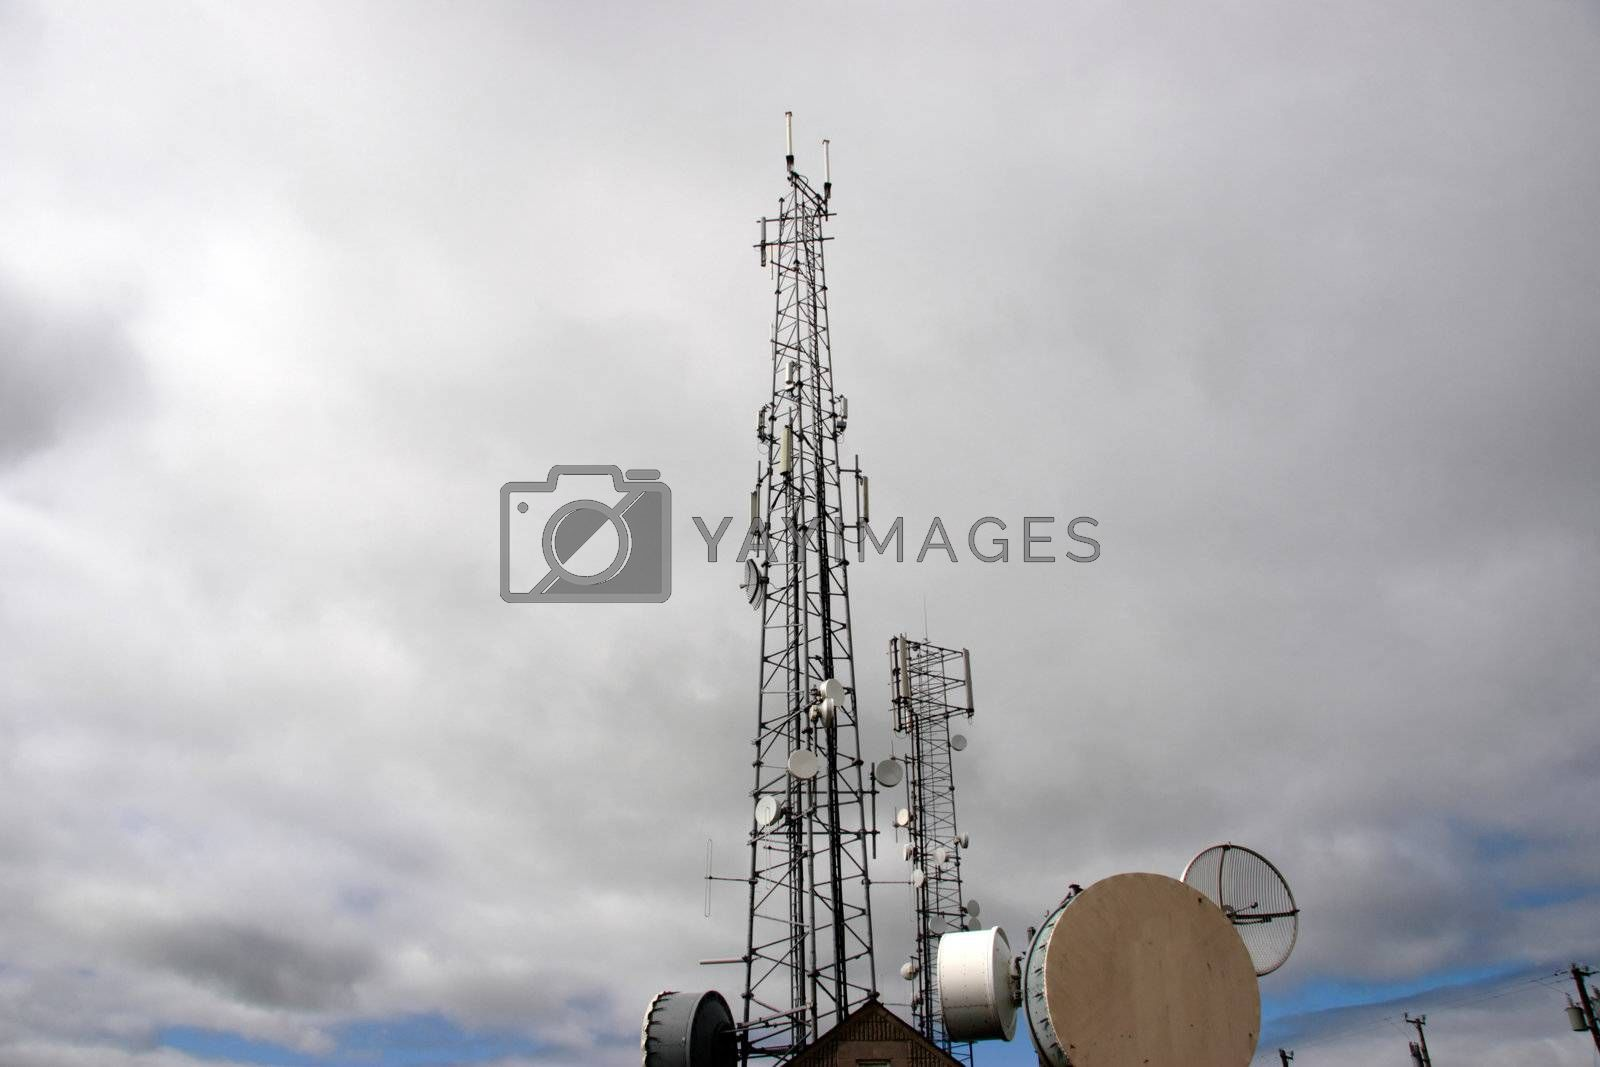 communication masts and dishes on top of a hill